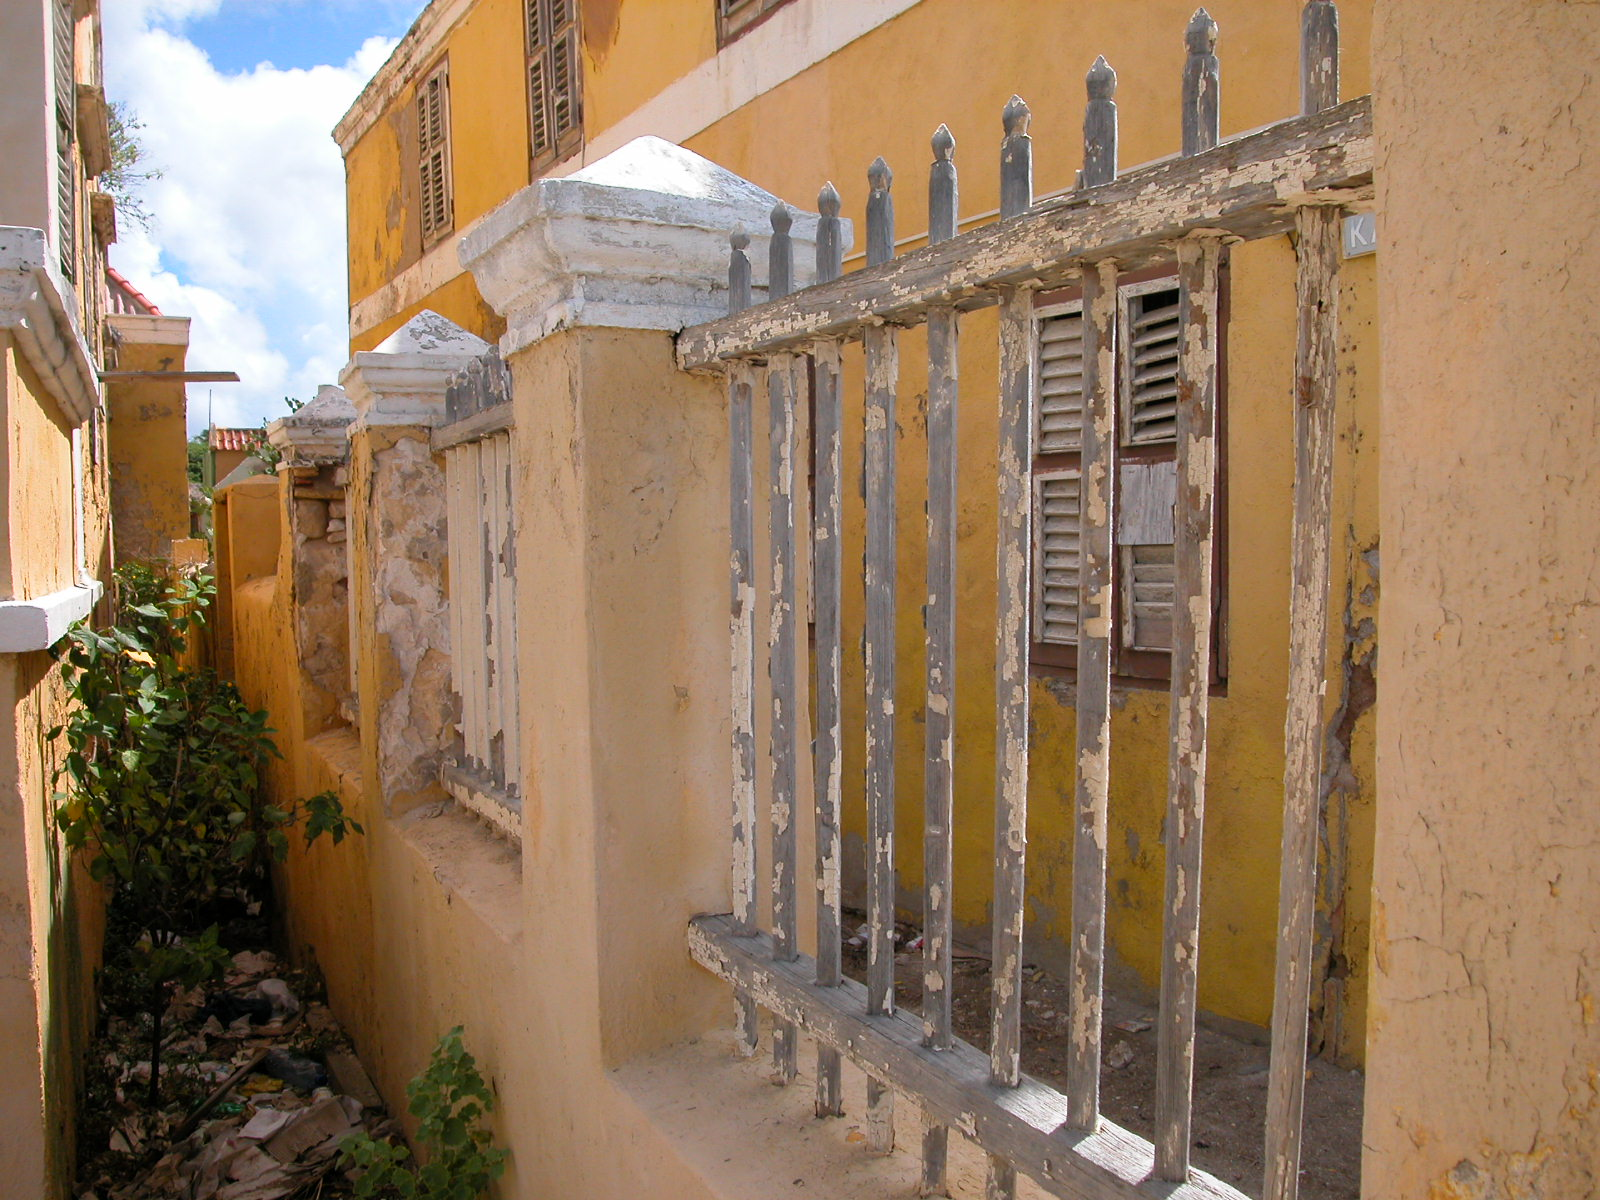 mediterrenean caribbean port fence gate yellow paint happy alley alleyway blinds shutters